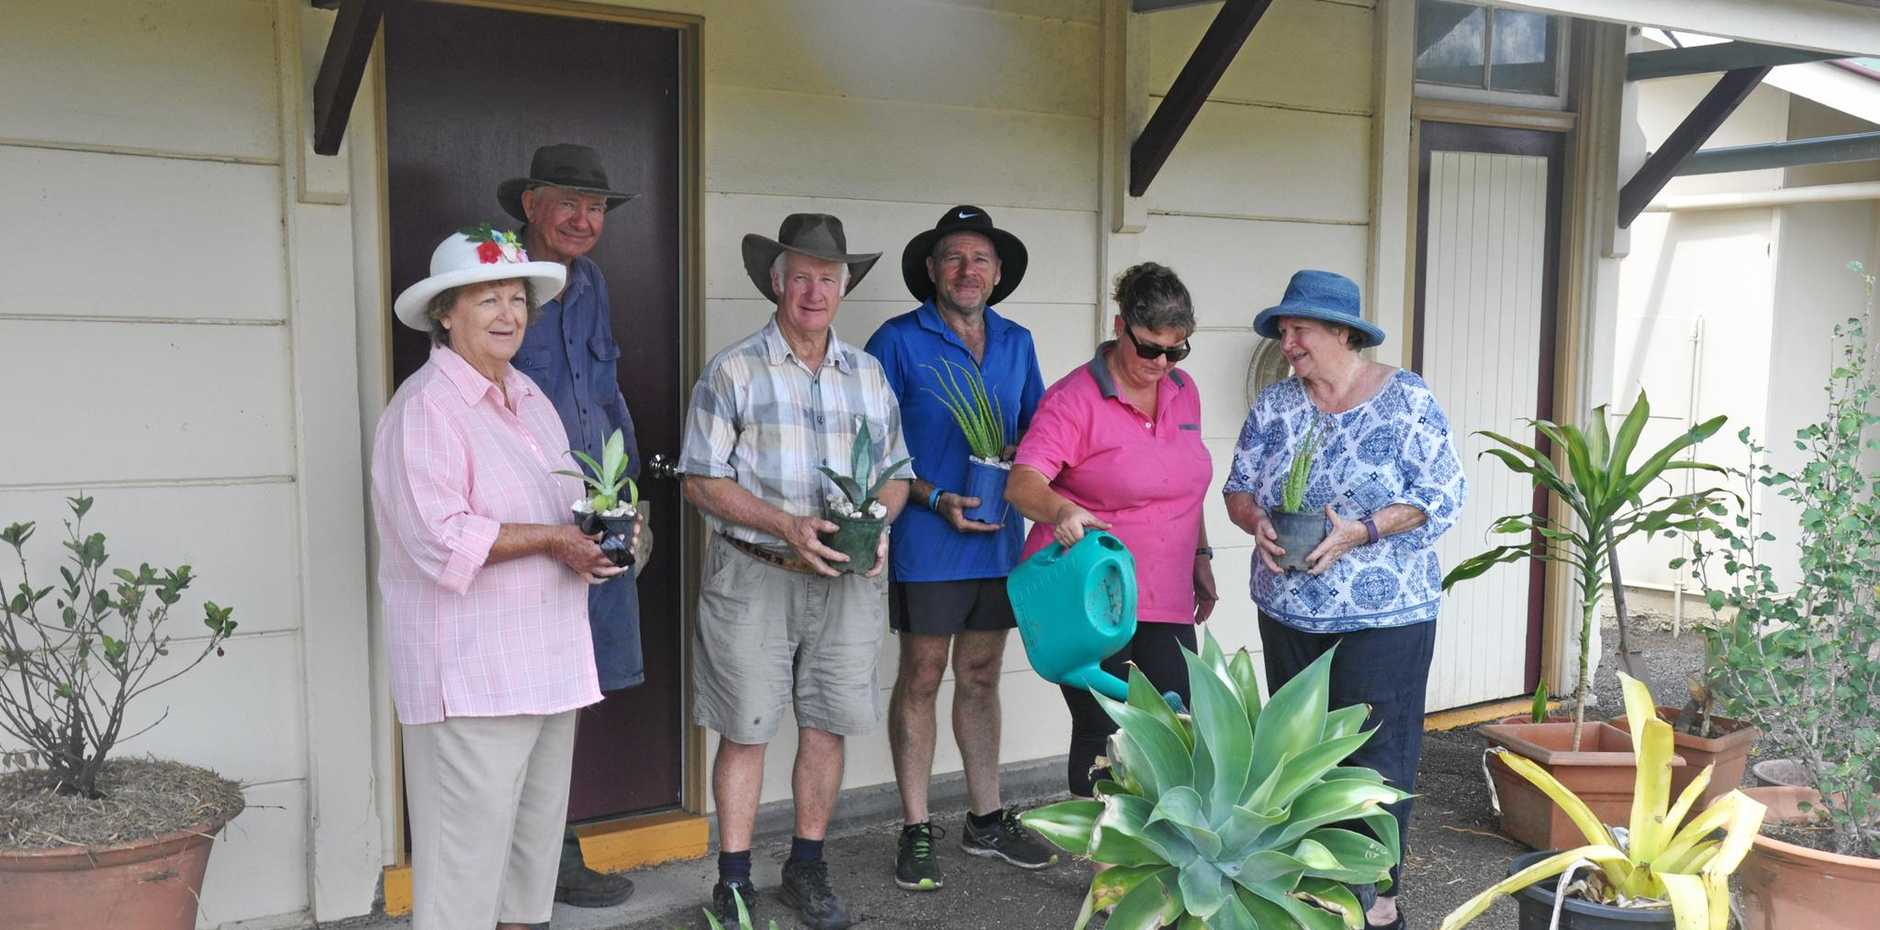 GREEN THUMB: Volunteers work to beautify the old Monto railhouse with a garden.